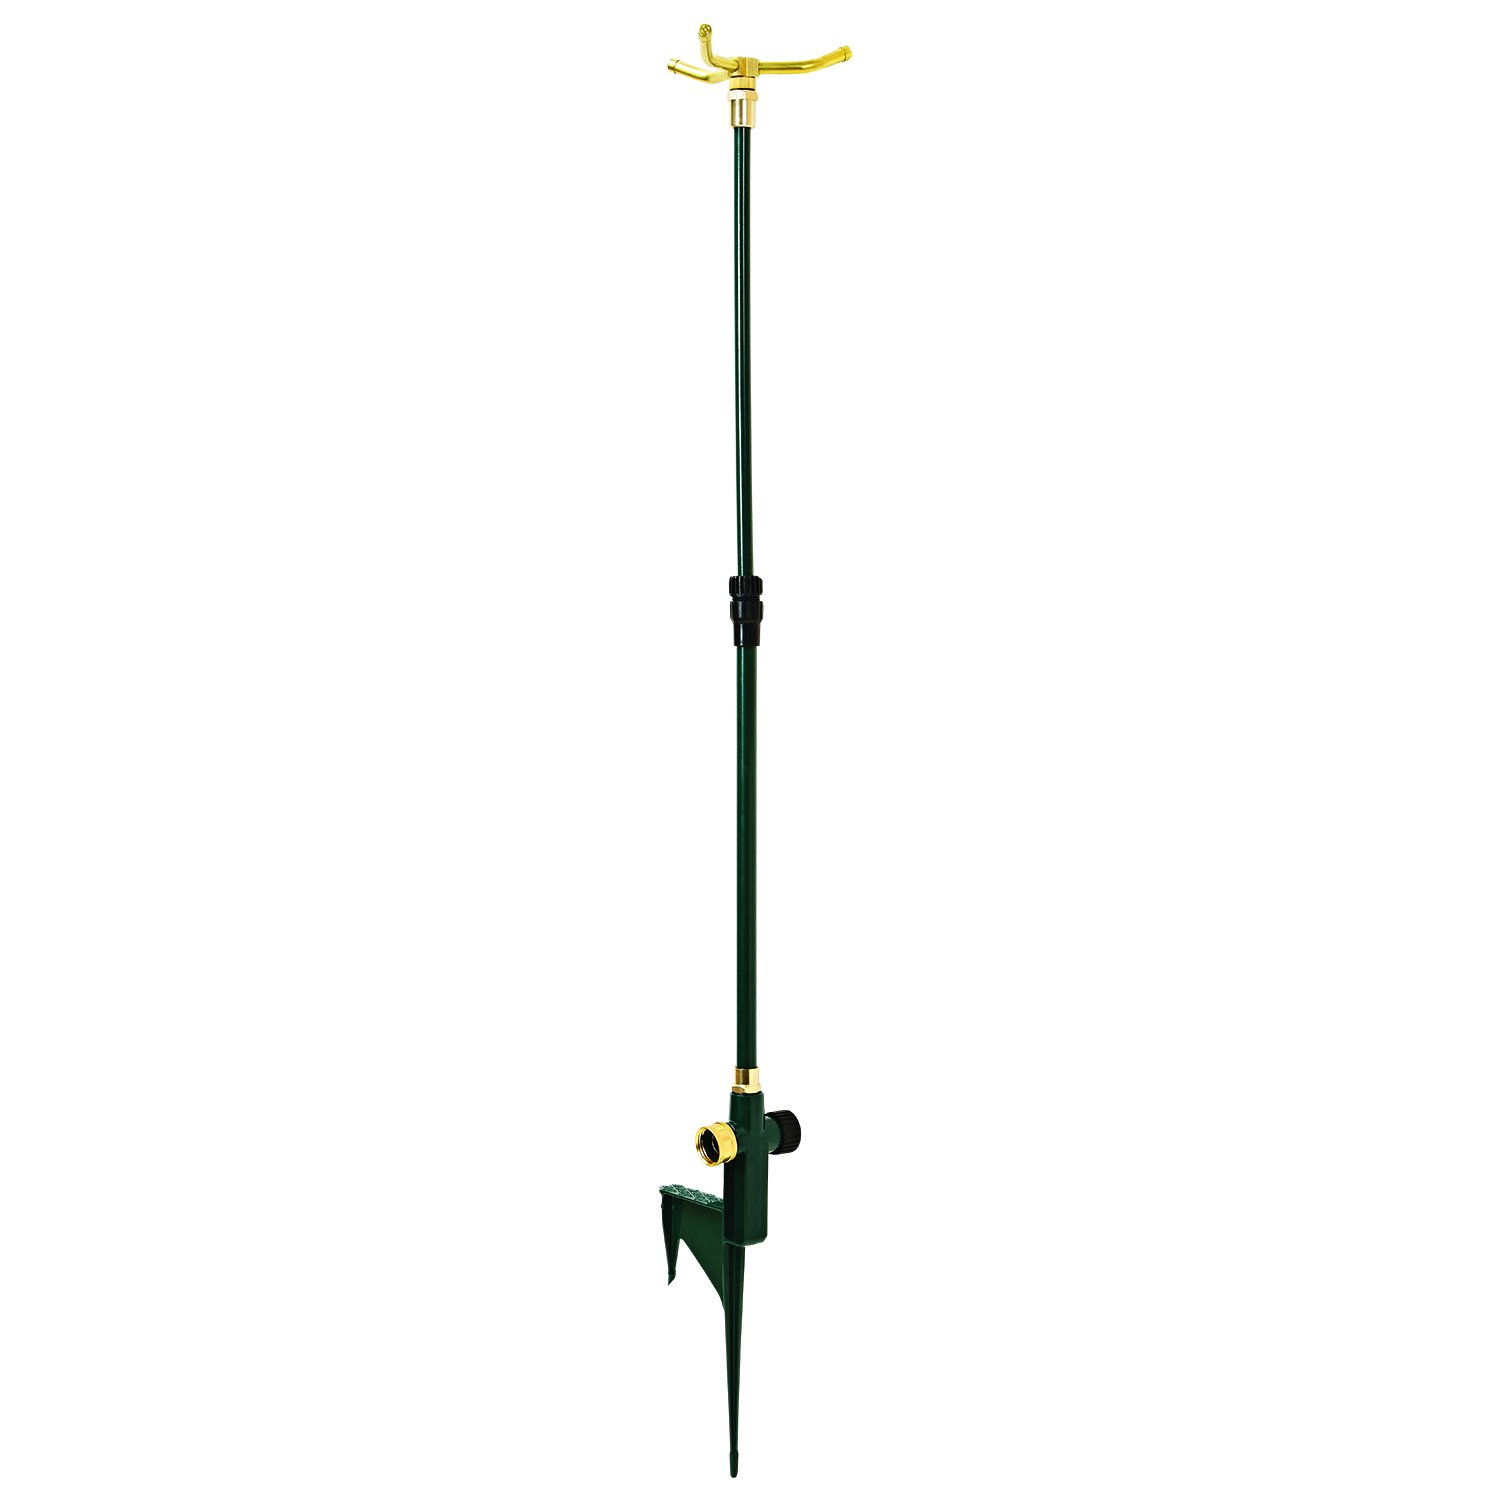 Melnor 15110 Telescoping Sprinkler, 40'', Green